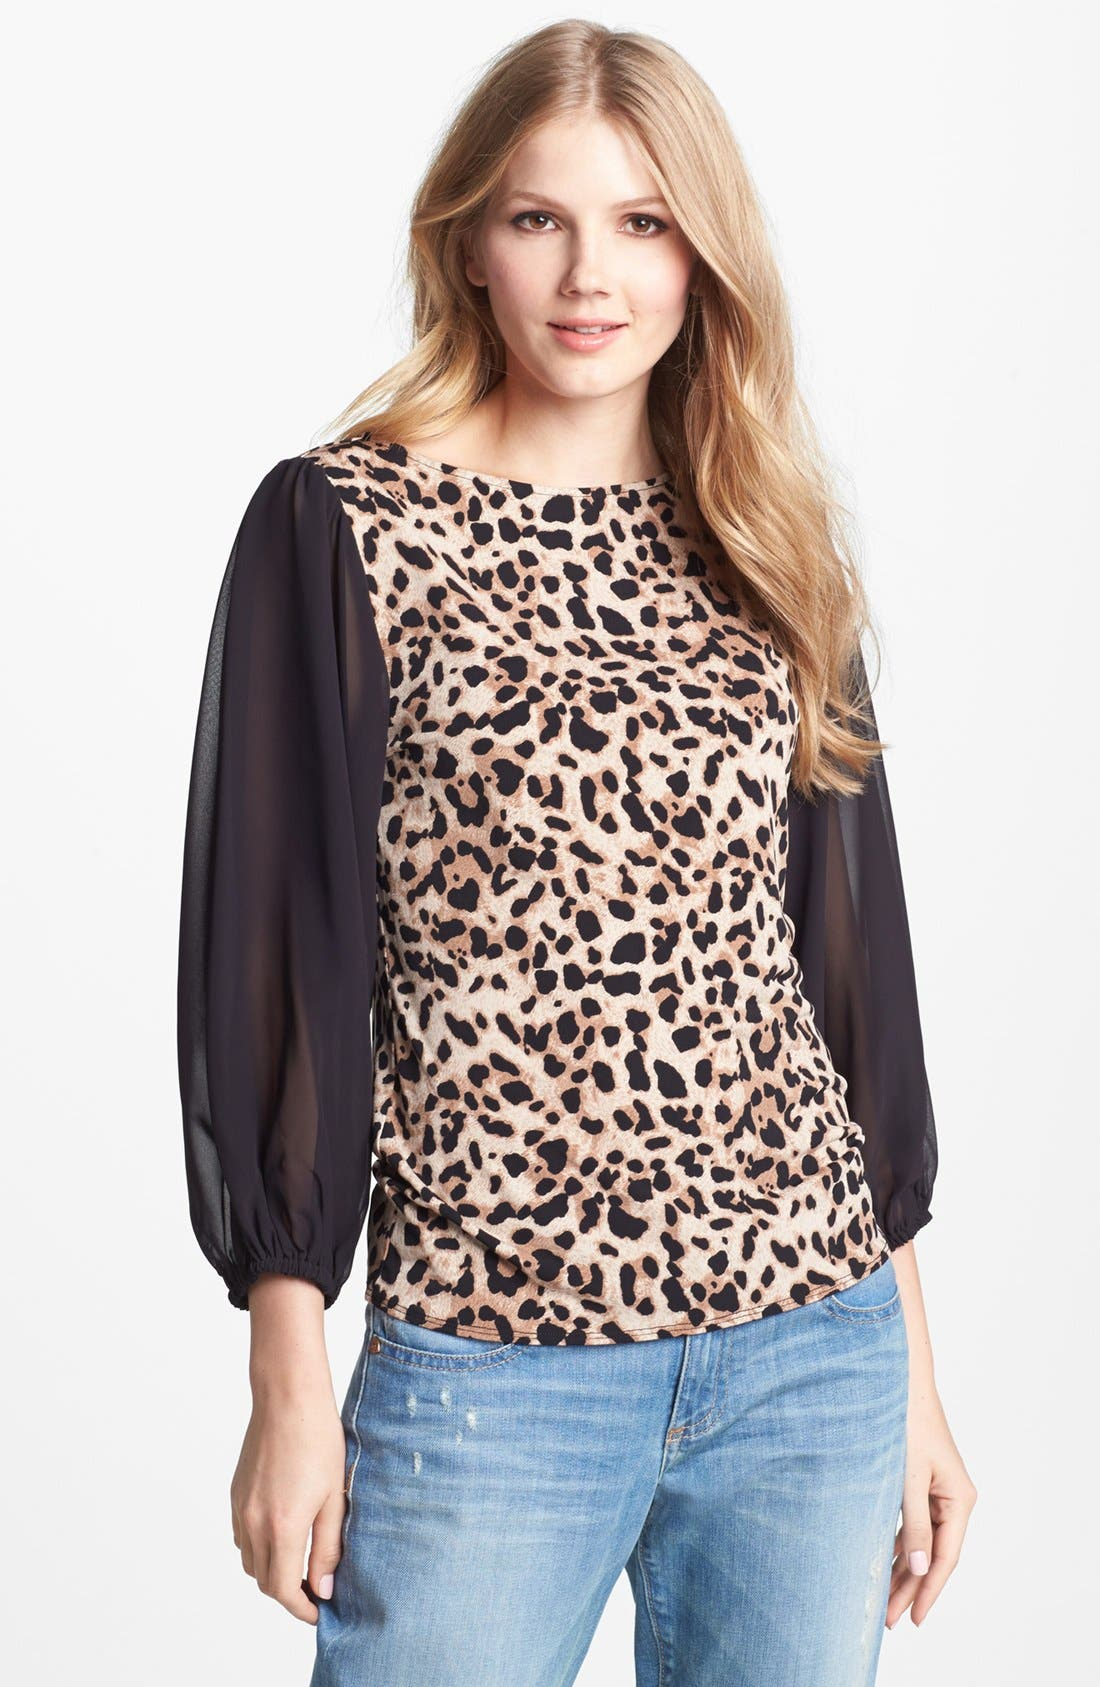 Alternate Image 1 Selected - Vince Camuto Chiffon Sleeve Print Top